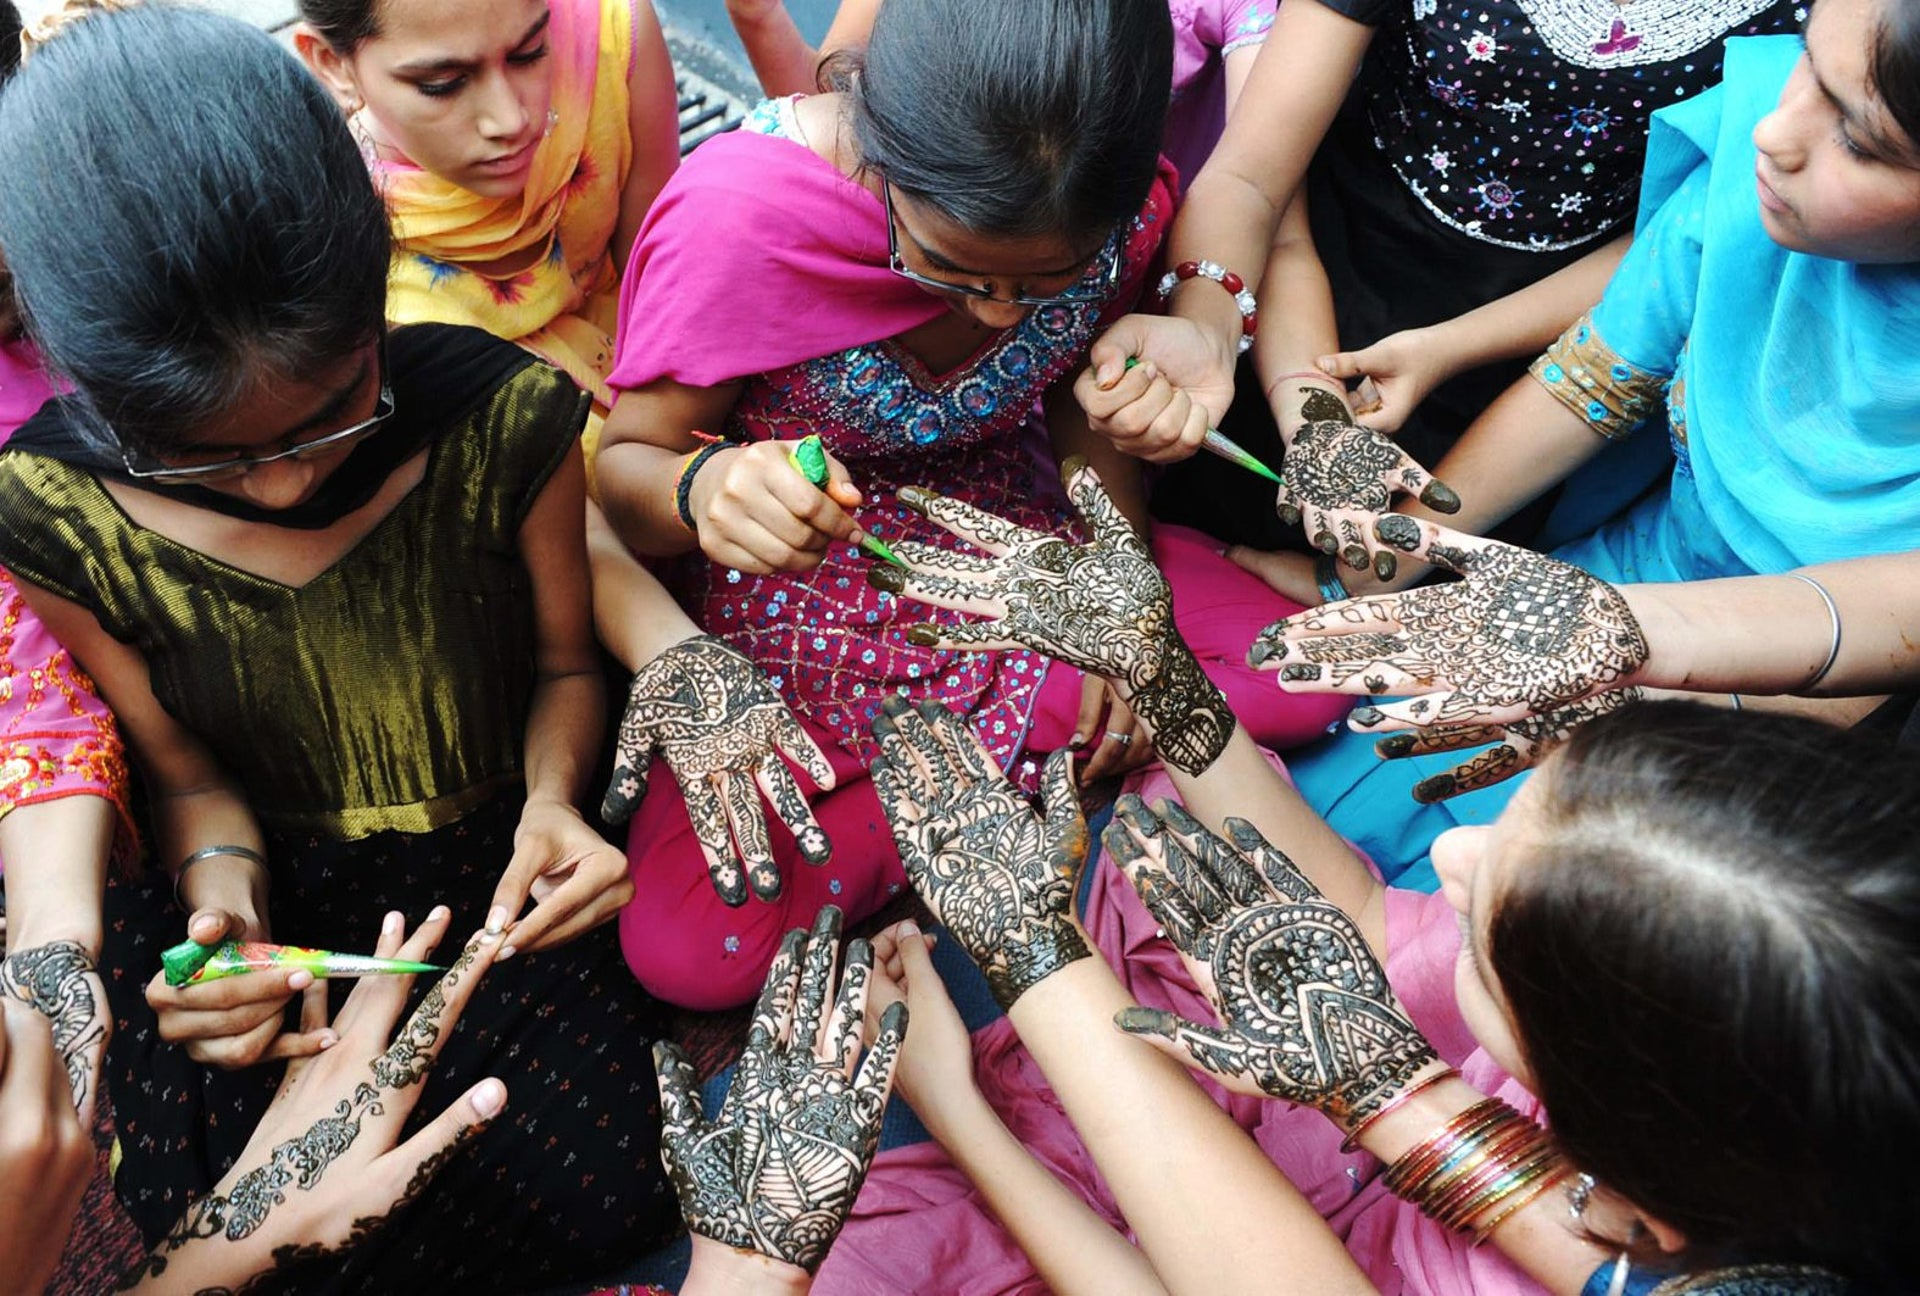 Indian schoolgirls decorate each other's hands with henna during Teej festival celebrations in Amritsar on July 25, 2009.